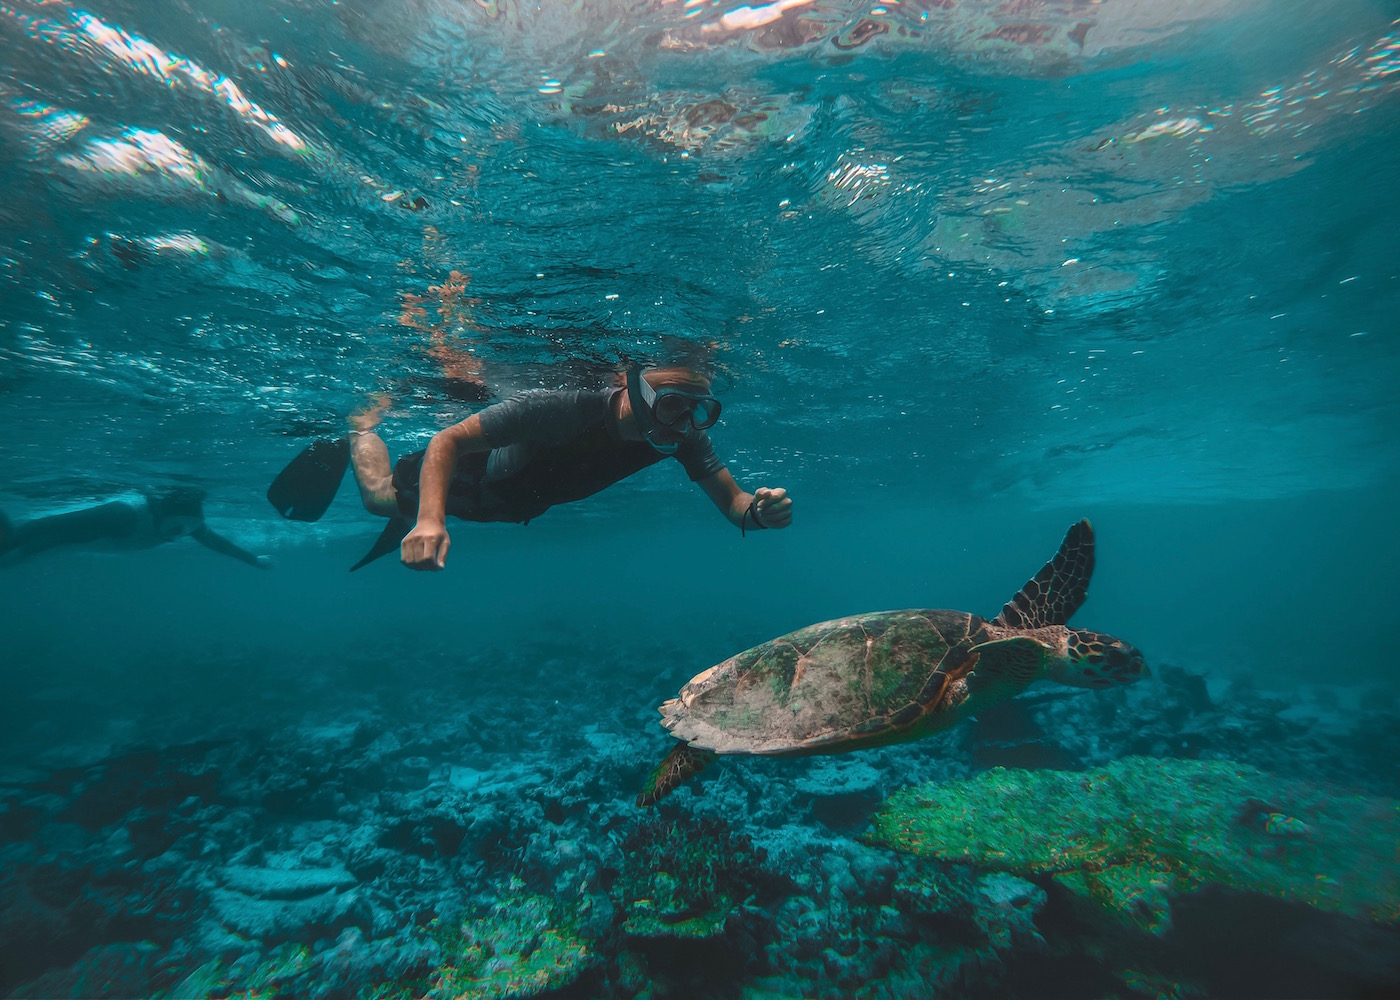 Turtle spotting while snorkelling in Nusa Lembongan and Nusa Ceningan in Bali, Indonesia